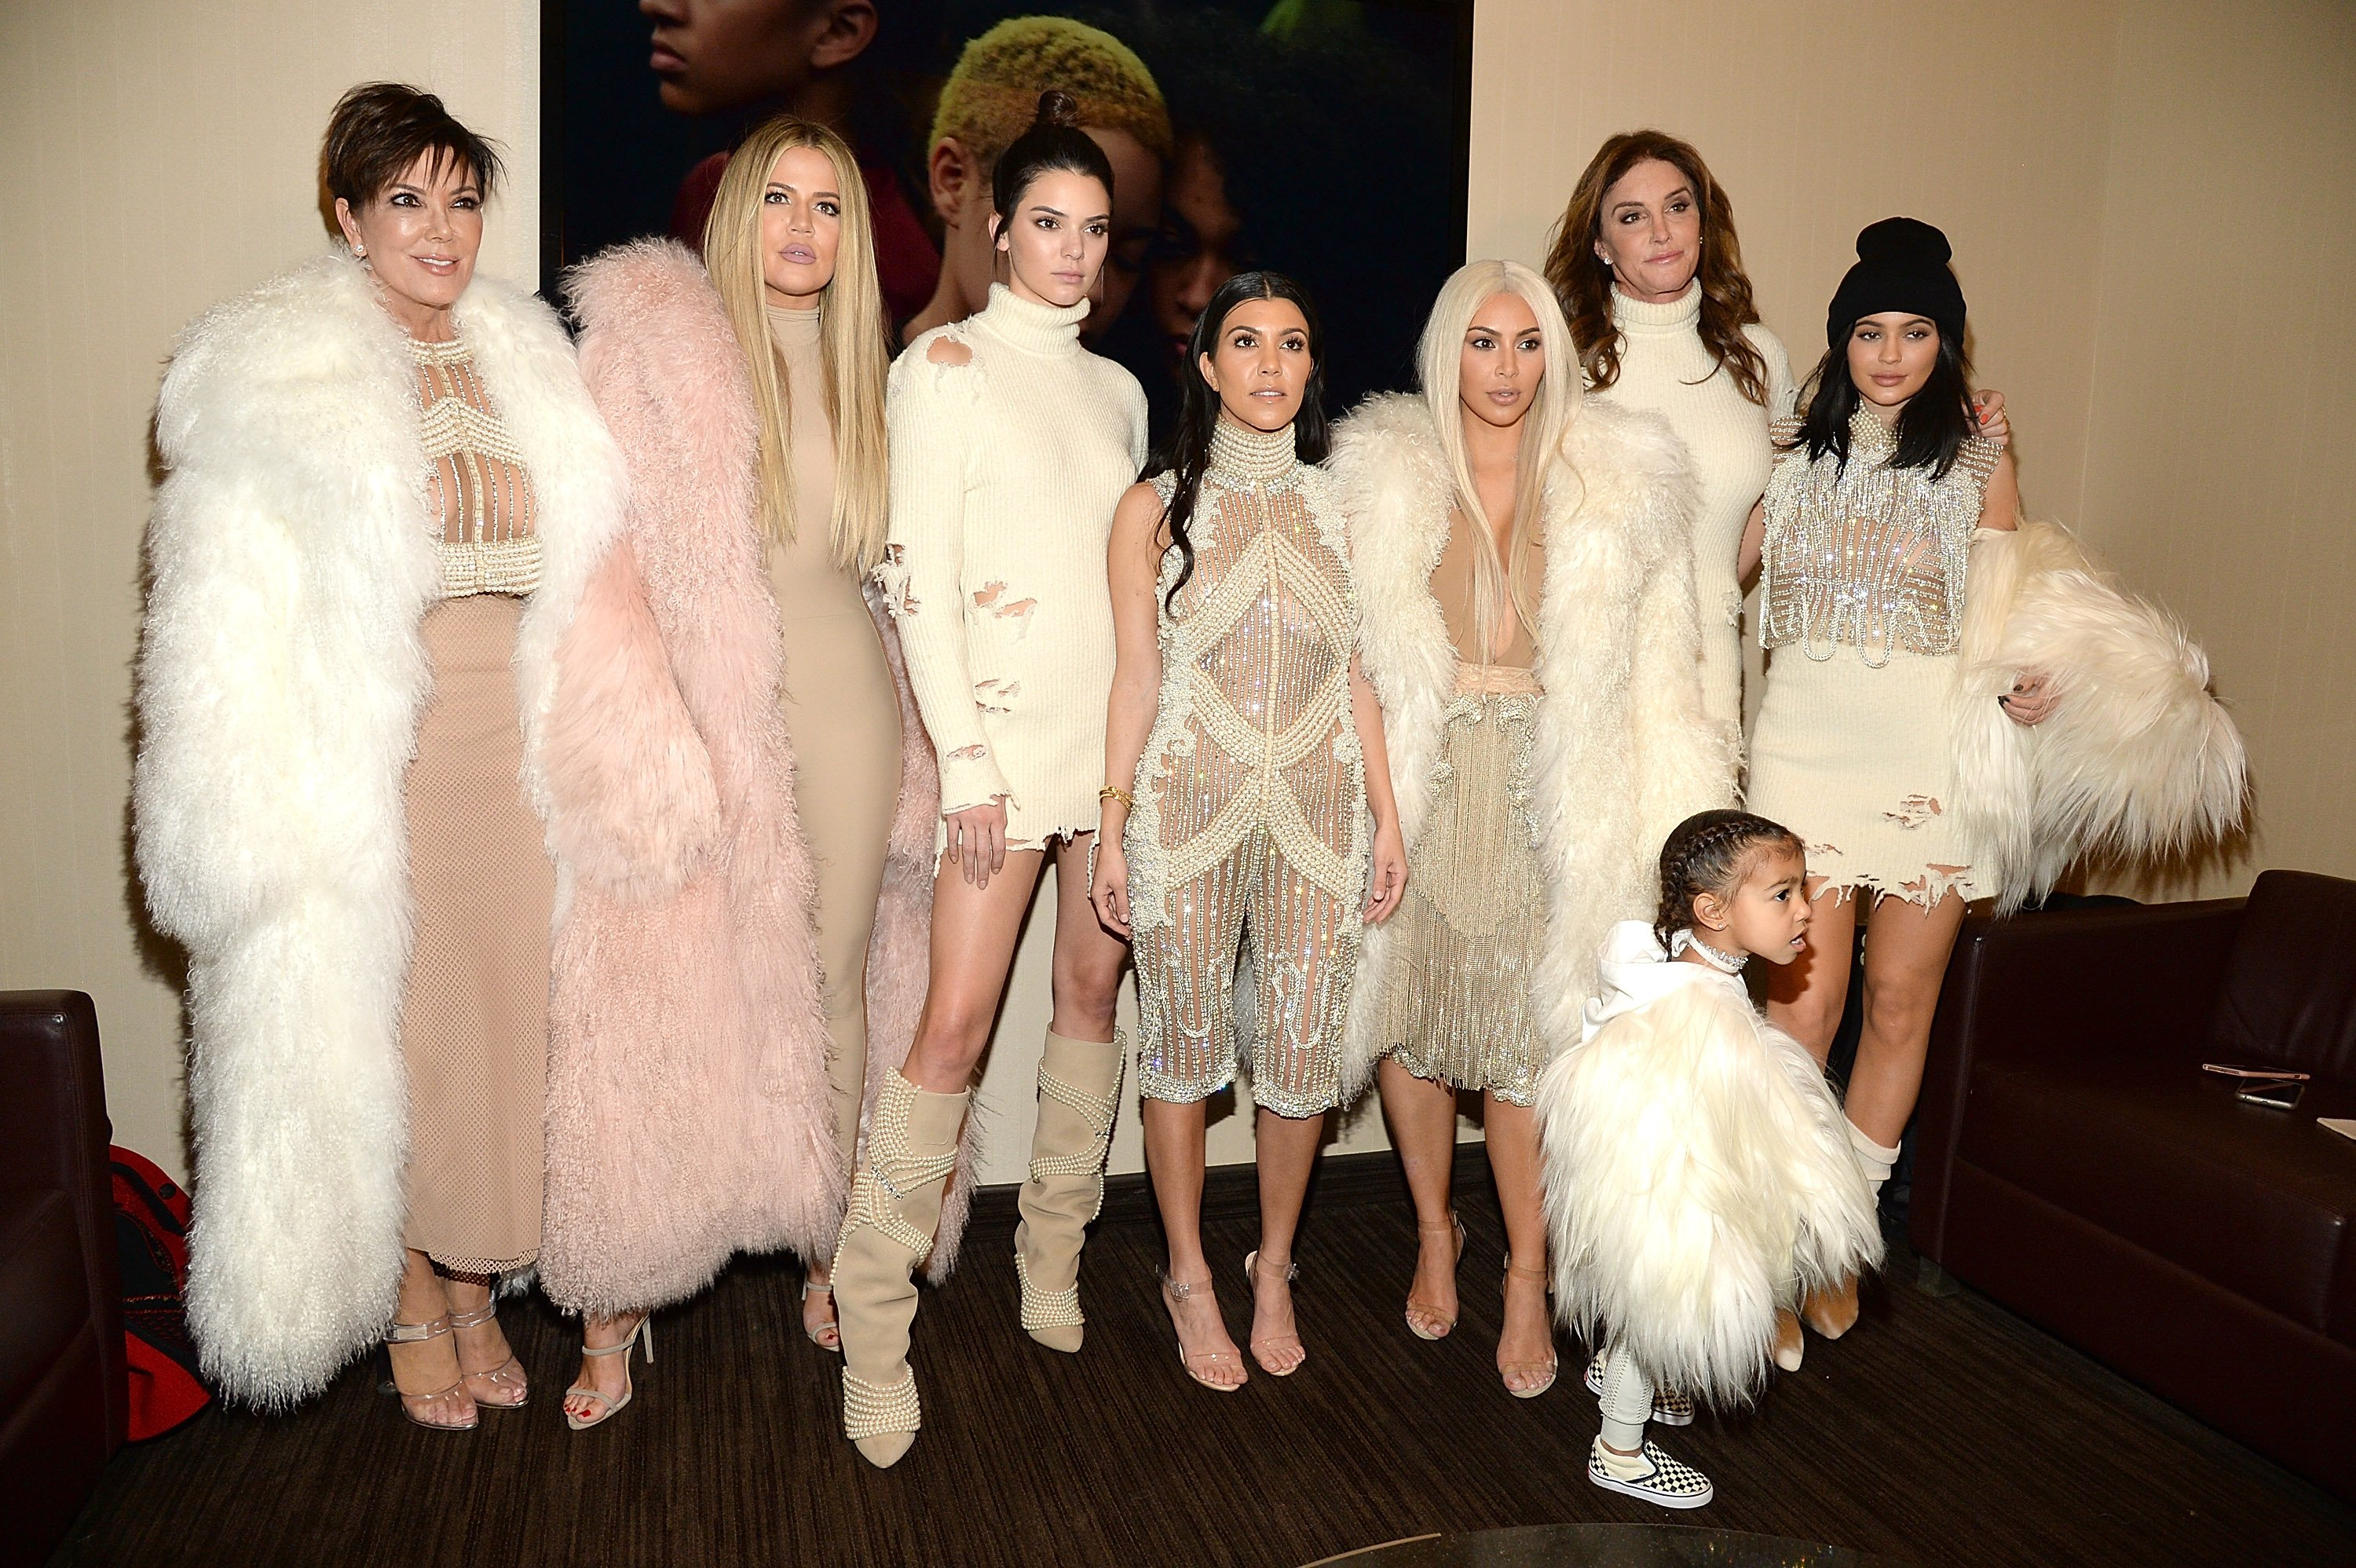 Khloe Kardashian, Kris Jenner, Kendall Jenner, Kourtney Kardashian, Kim Kardashian West, North West, Caitlyn Jenner, and Kylie Jenner at the Kanye West Yeezy Season 3 show at Madison Square Garden on February 11, 2016 in New York City.|Source: Getty Images